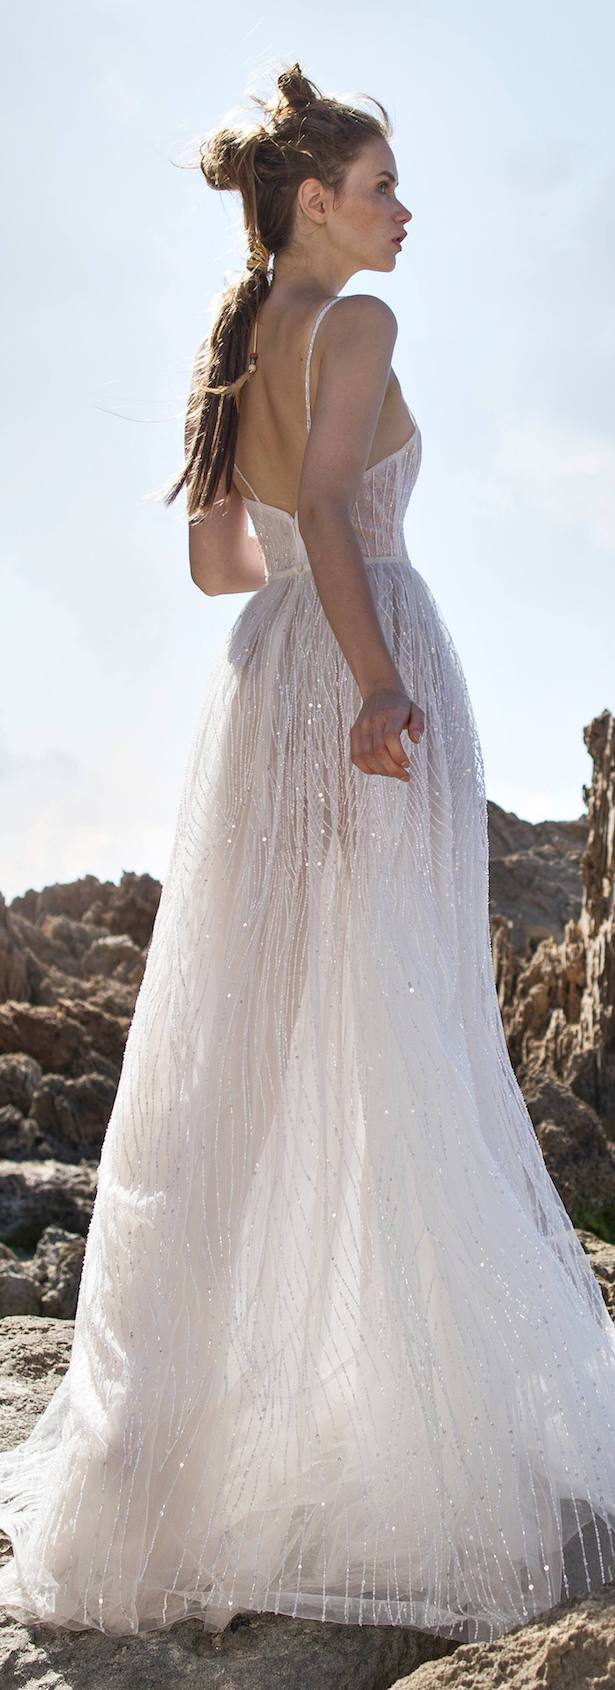 Wedding Dress by Limor Rosen Bridal Couture 2018 Free Spirit Collection - Kate